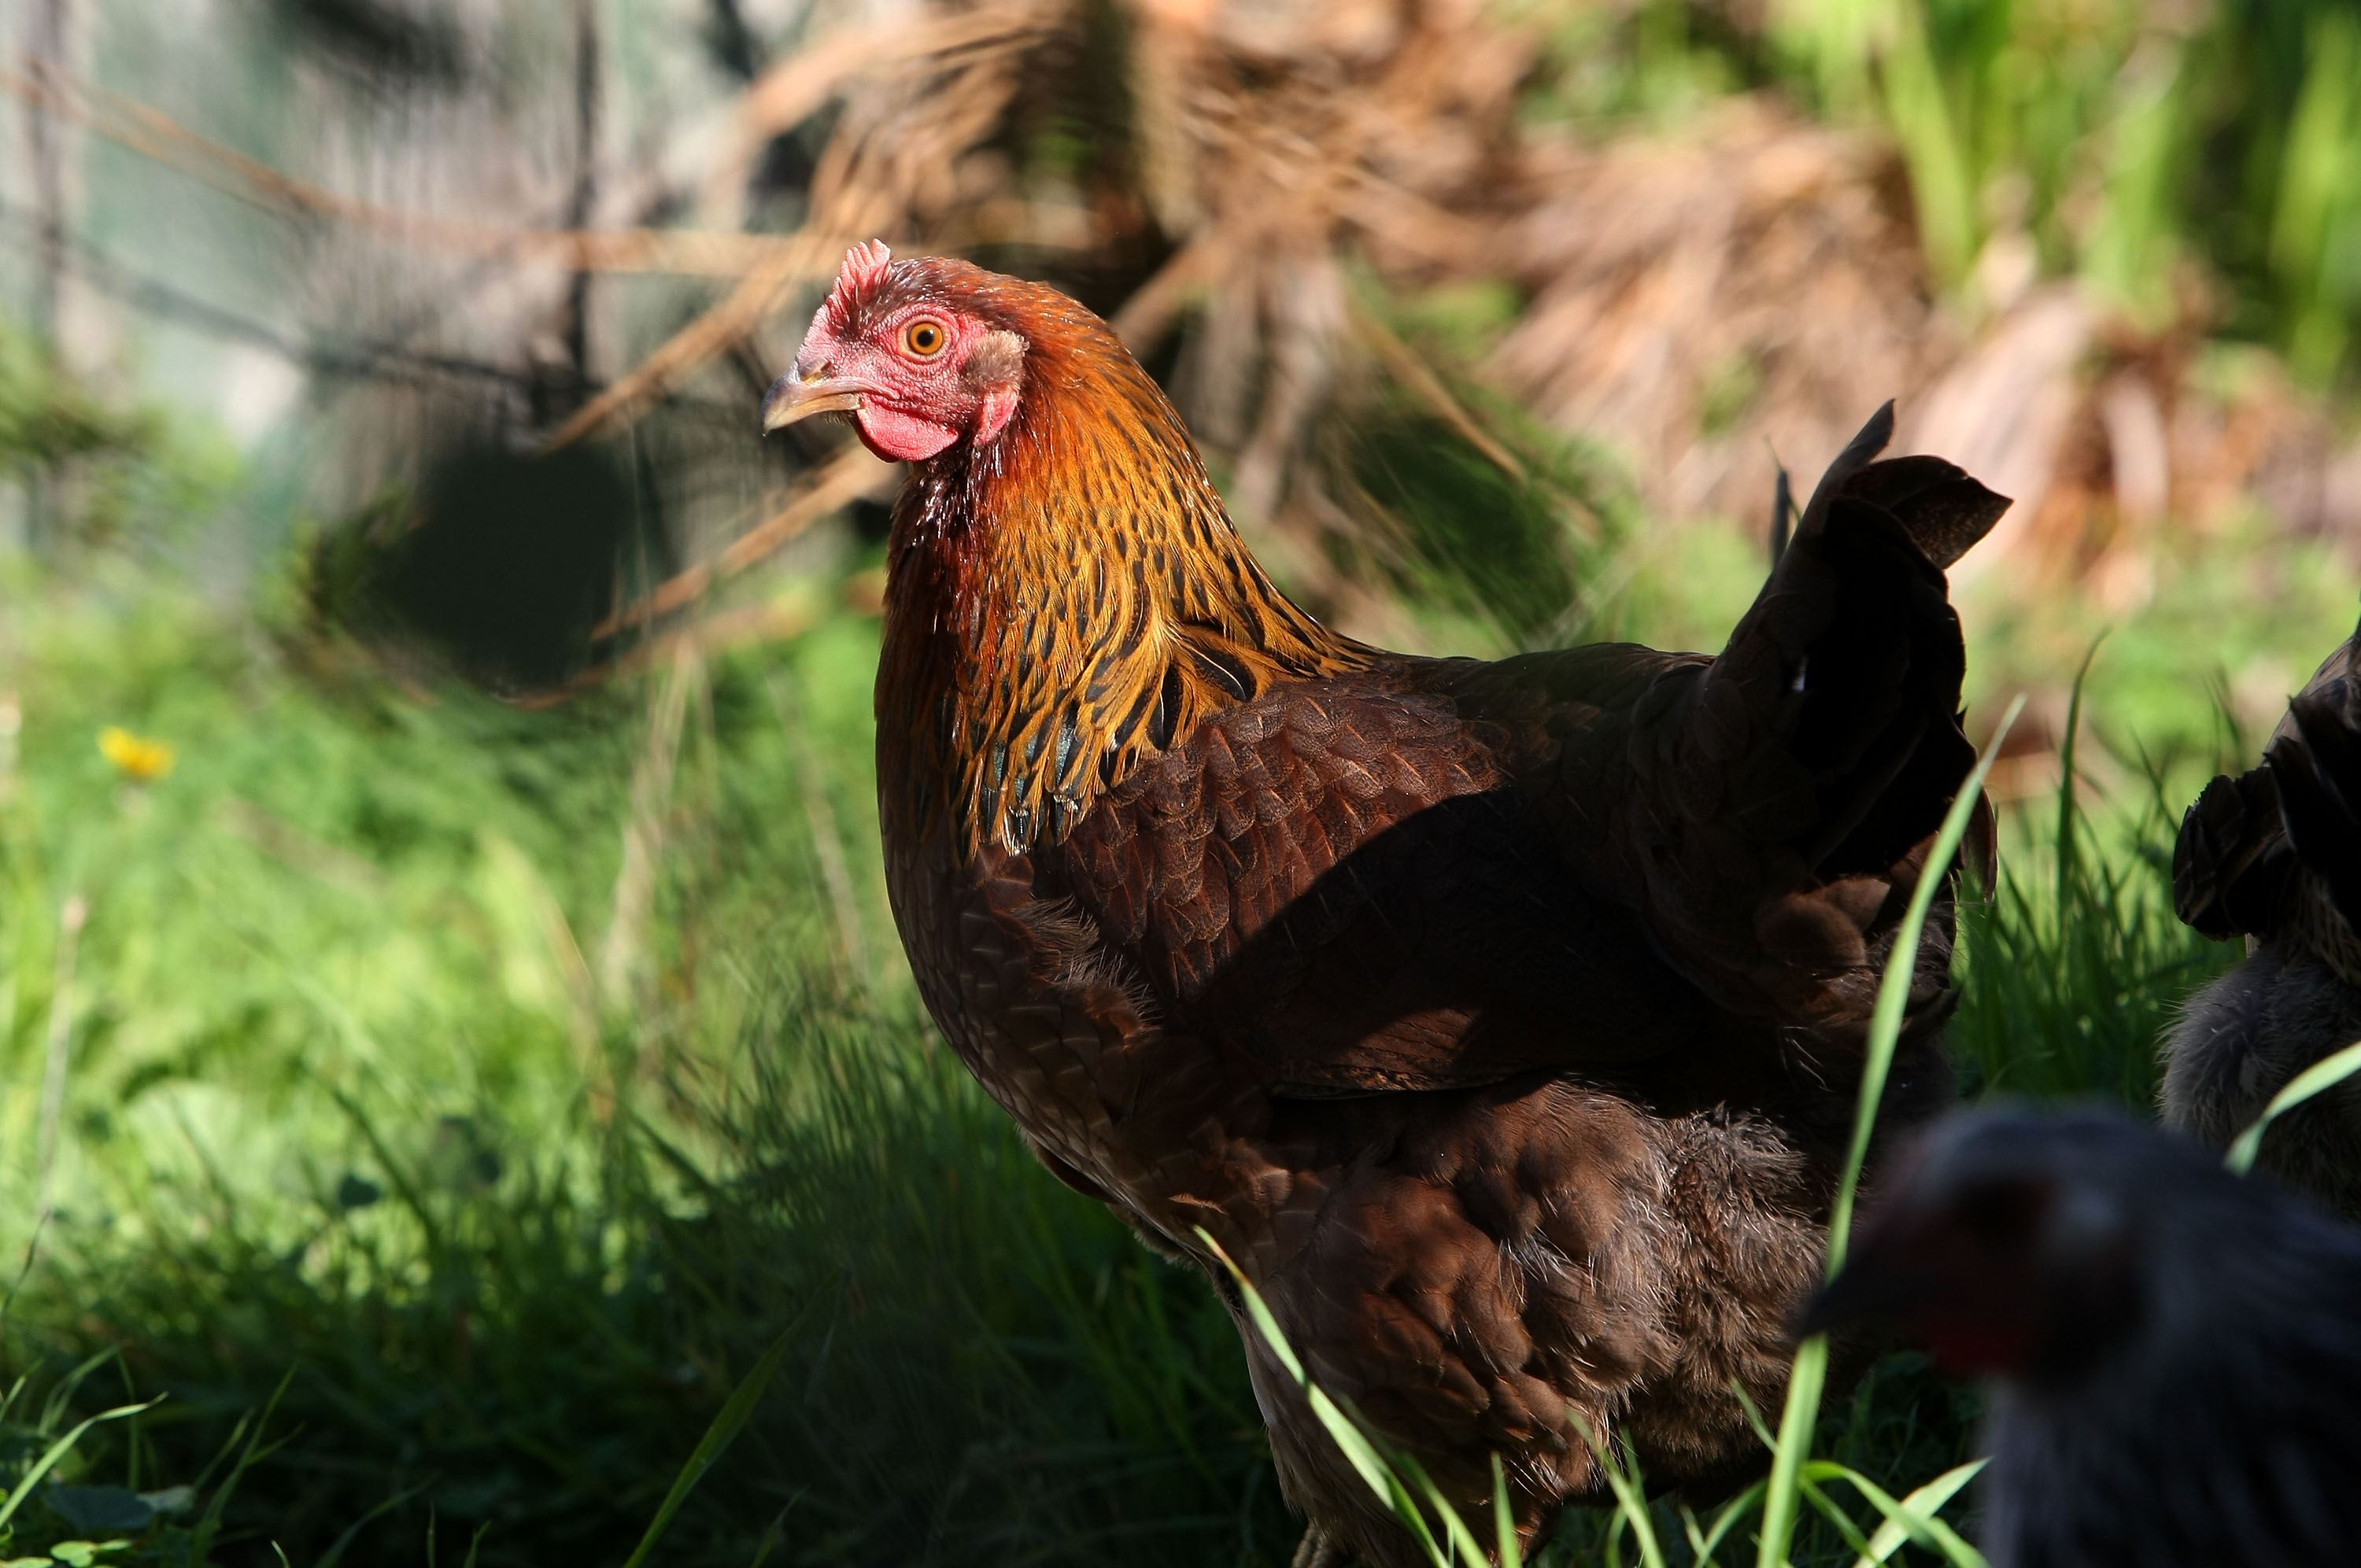 hundreds sickened by salmonella from pet chickens and ducks cbs news